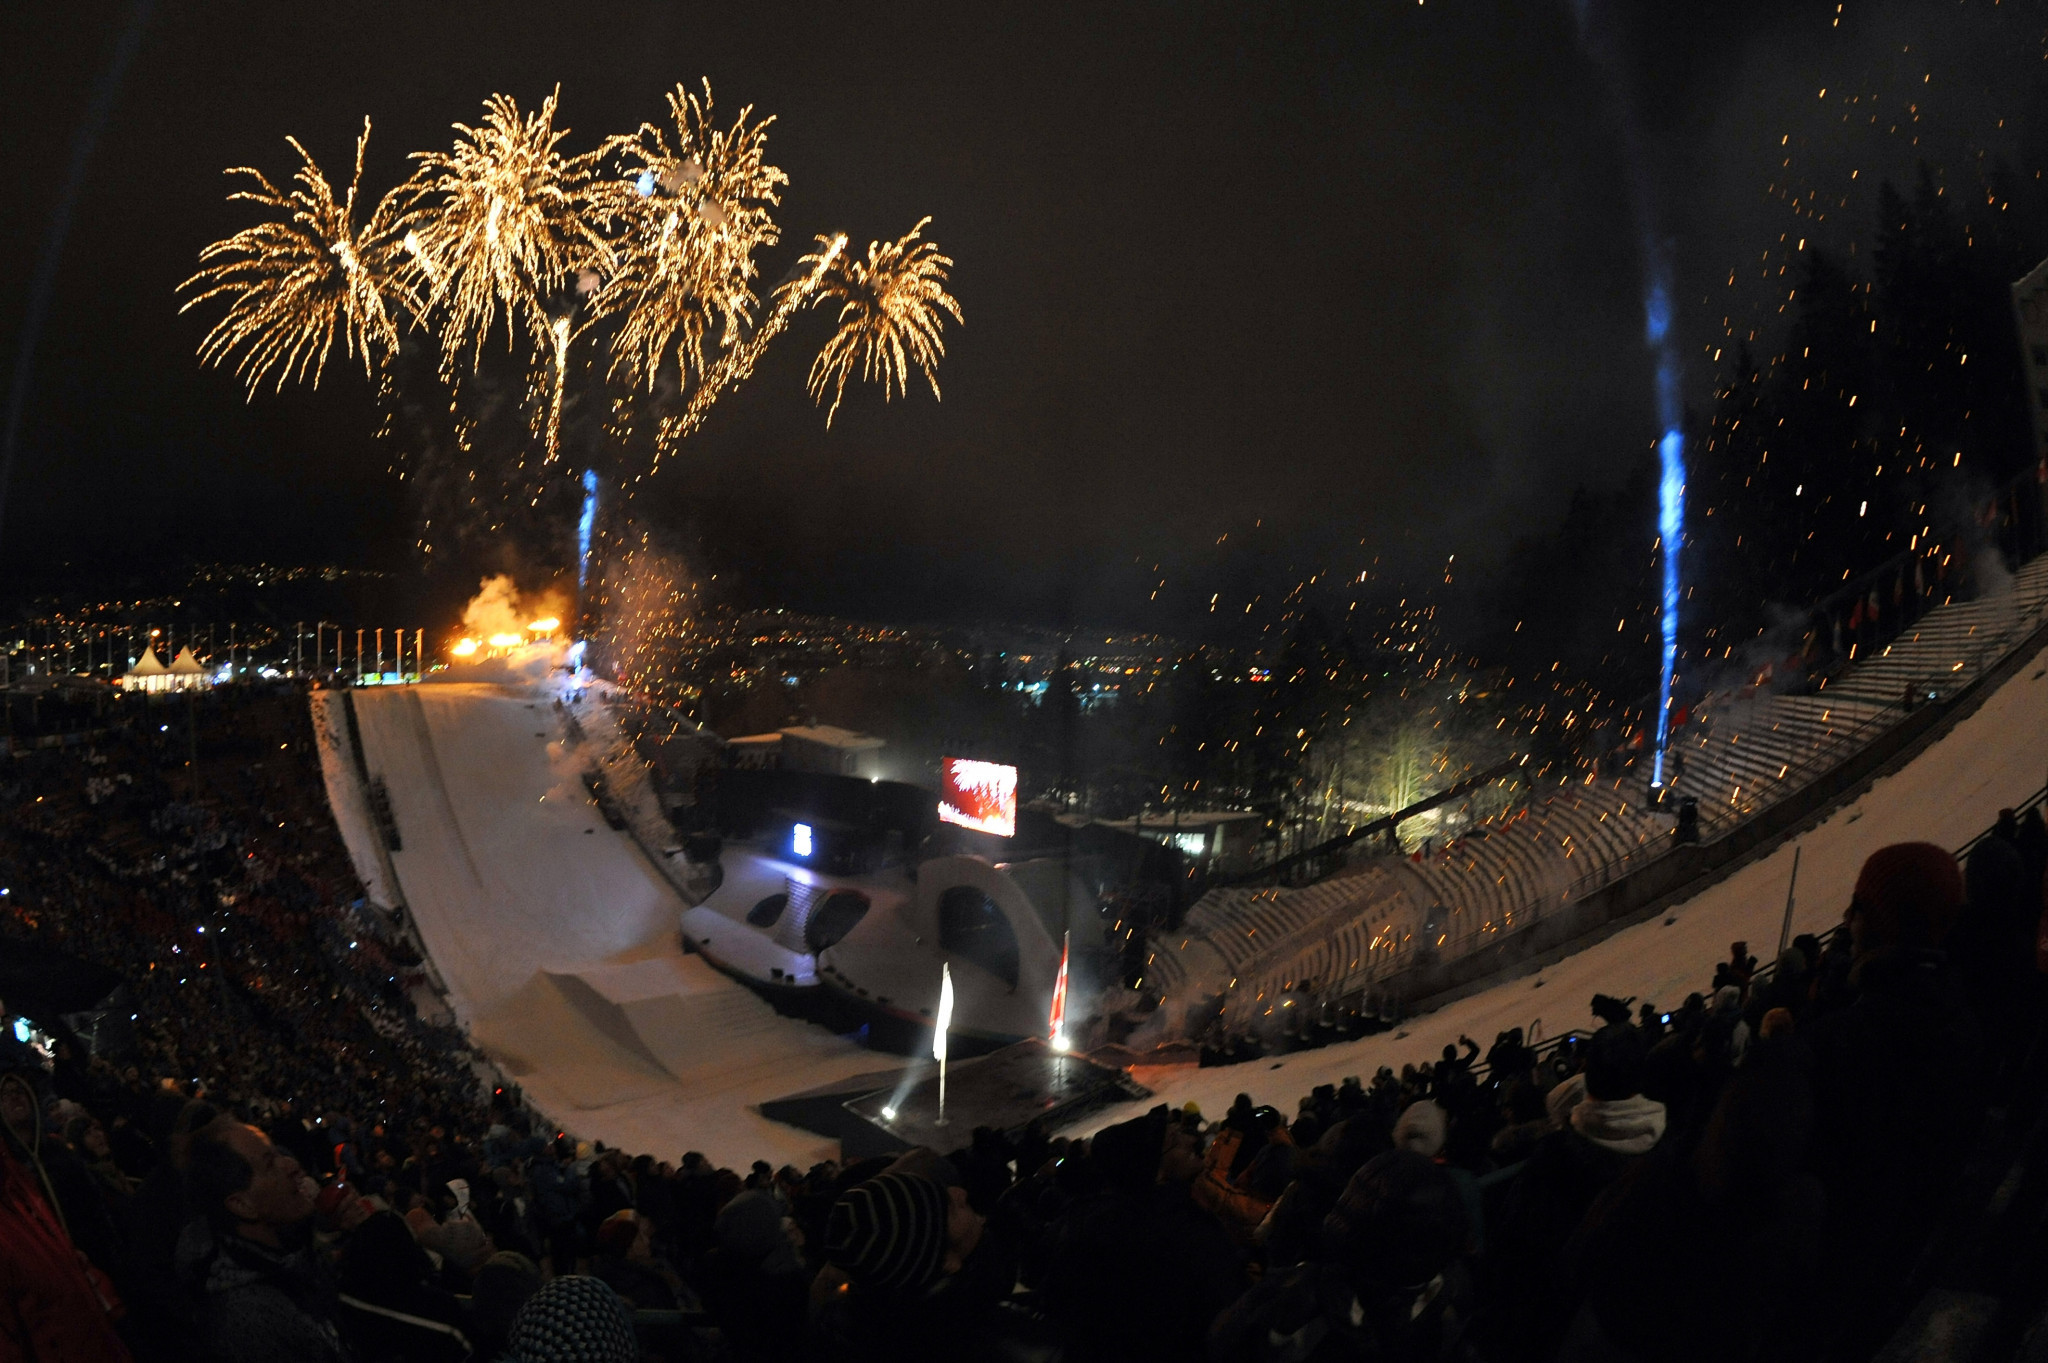 The Innsbruck 2012 Opening Ceremony took place in a vast ski-jumping bowl ©Getty Images